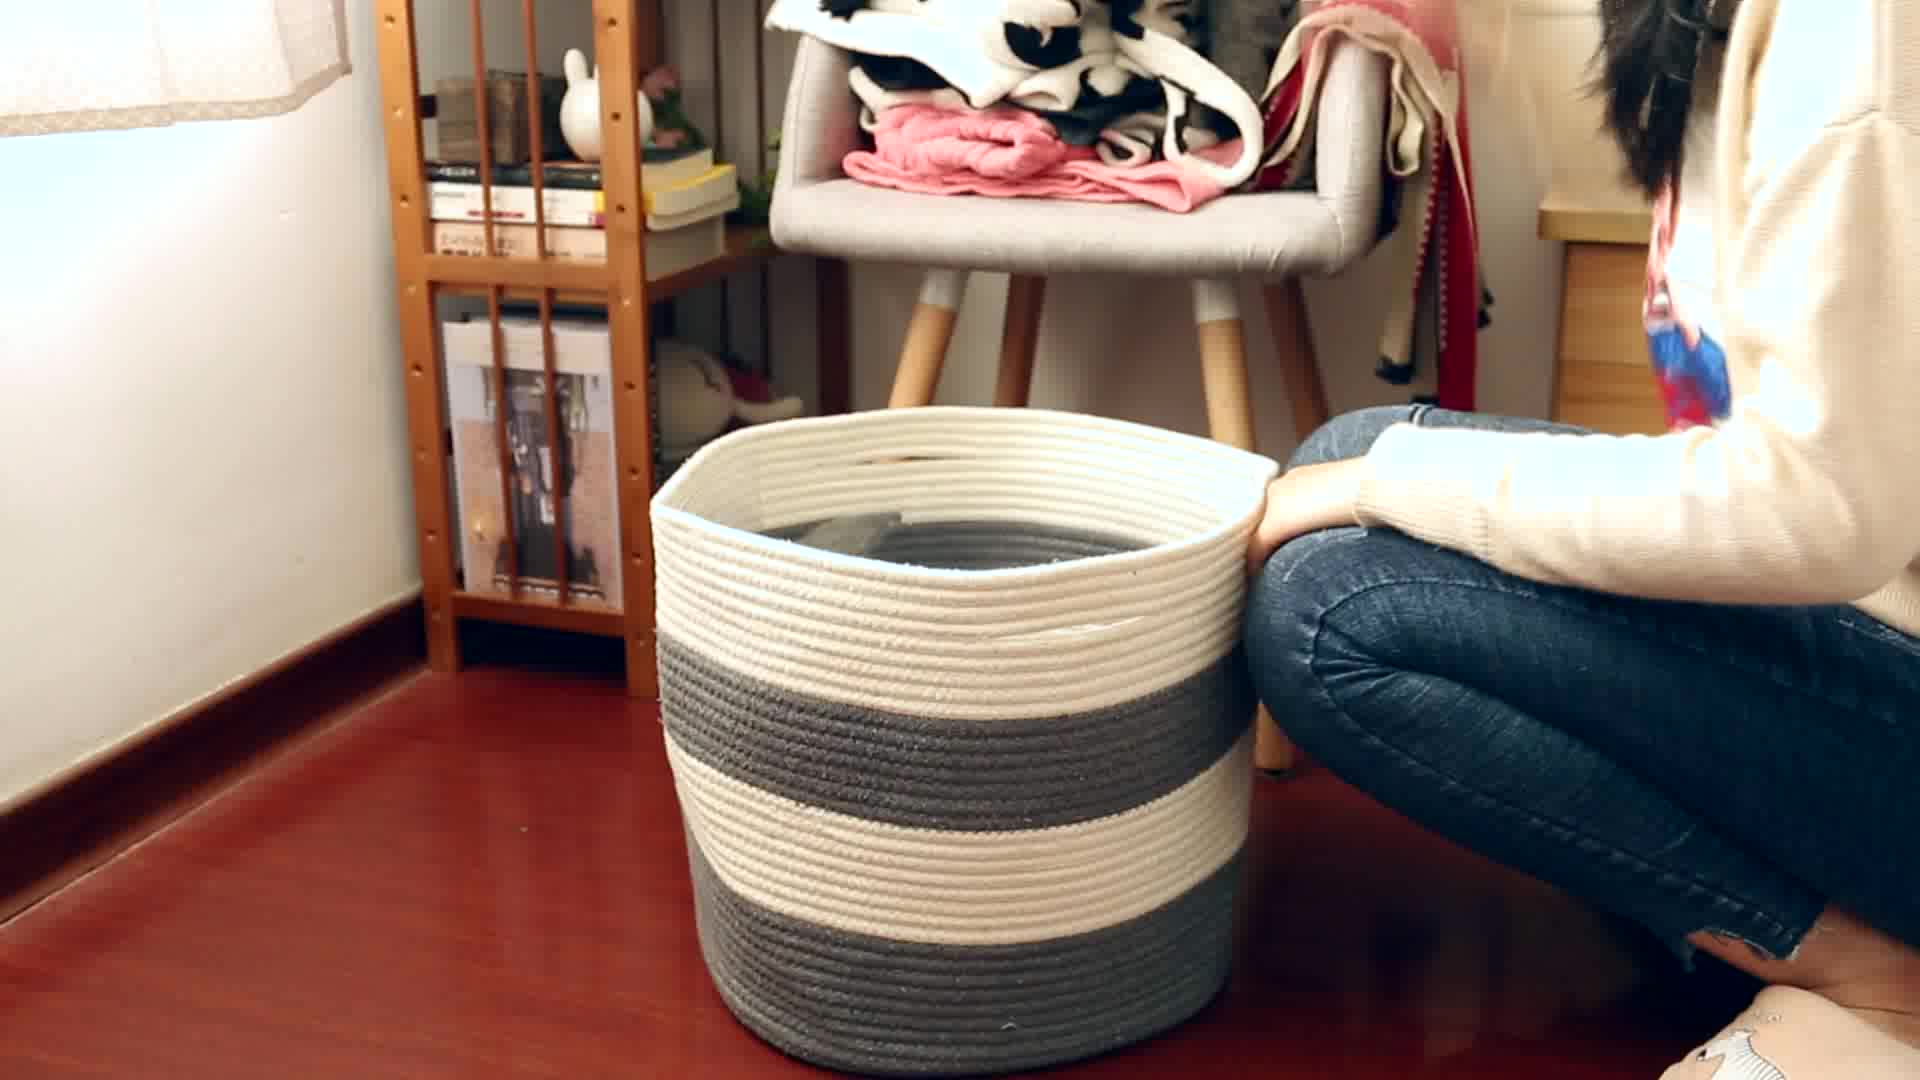 QJMAX Wholesales 2019 New Style XXXL Large Foldable Cotton Rope Woven Laundry Storage Basket